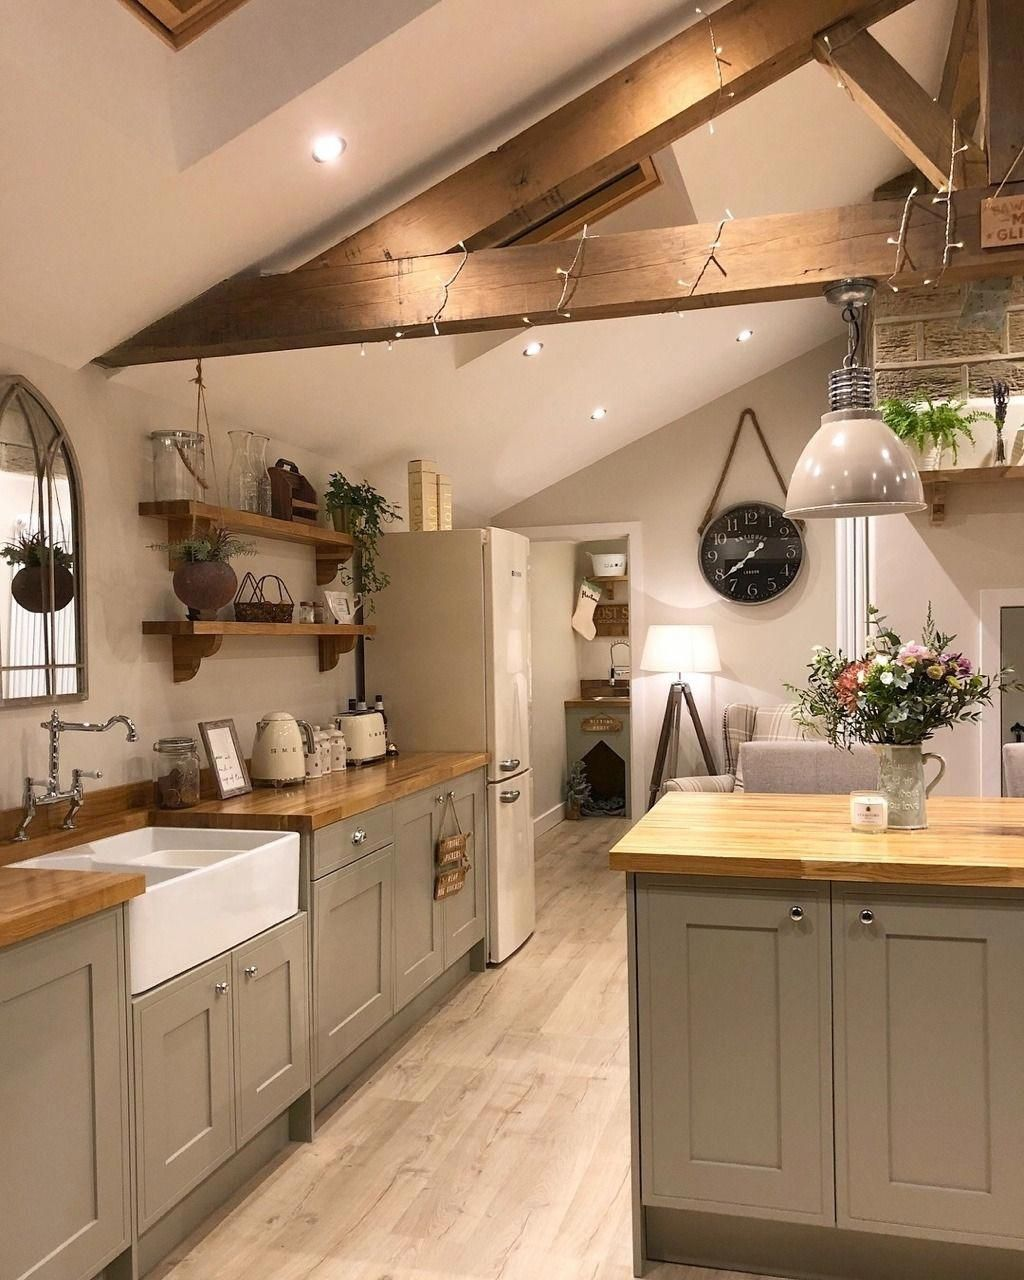 Charming Rustic Kitchen Ideas And Inspirations: KITCHEN INSPIRATION // N14HECTORHOUSE